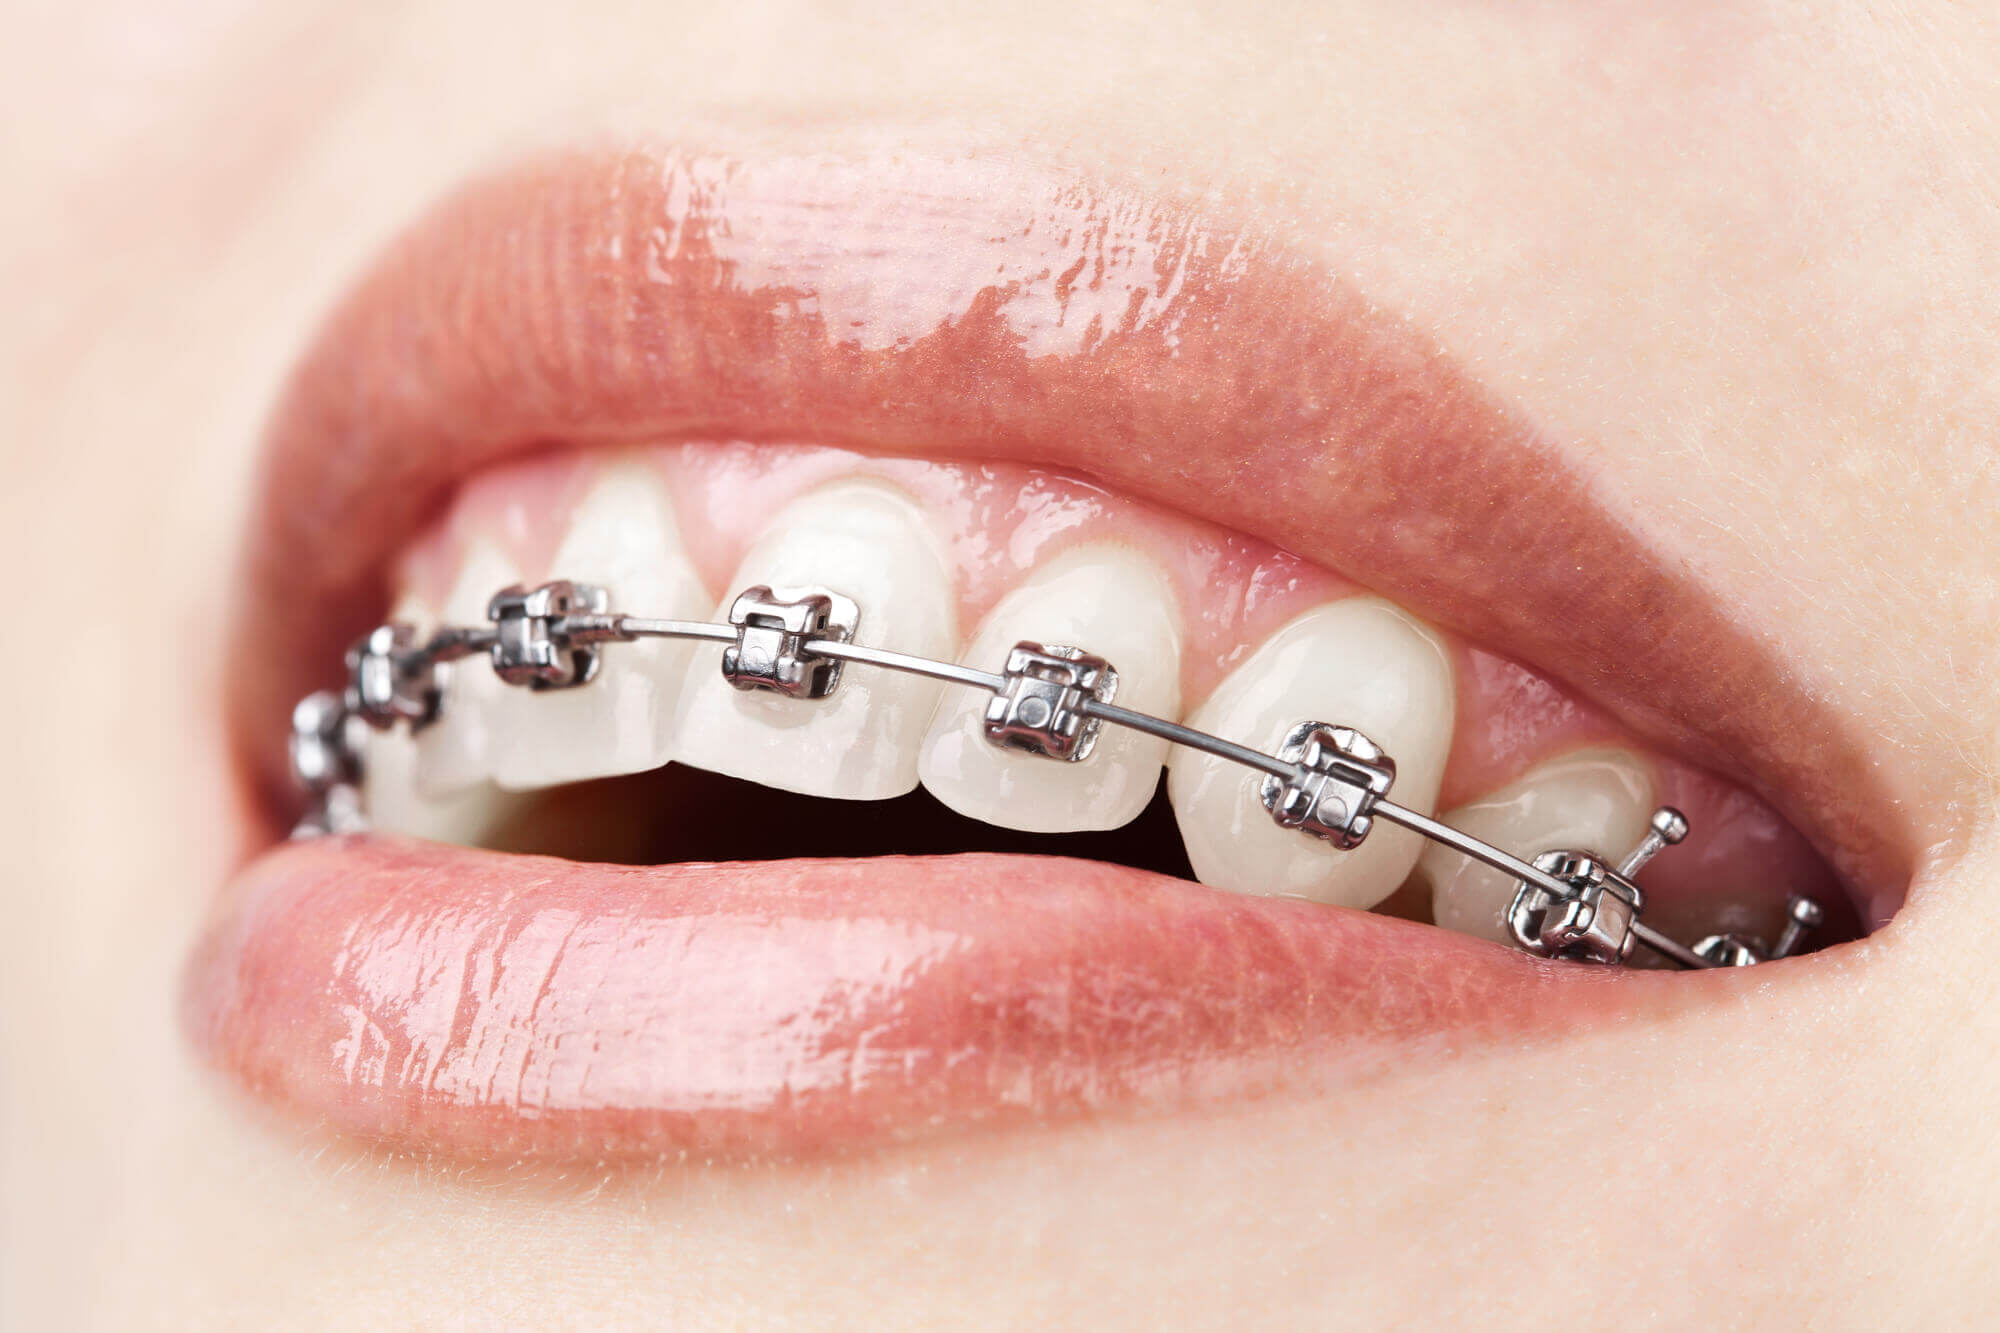 who offers the best orthodontics aventura?